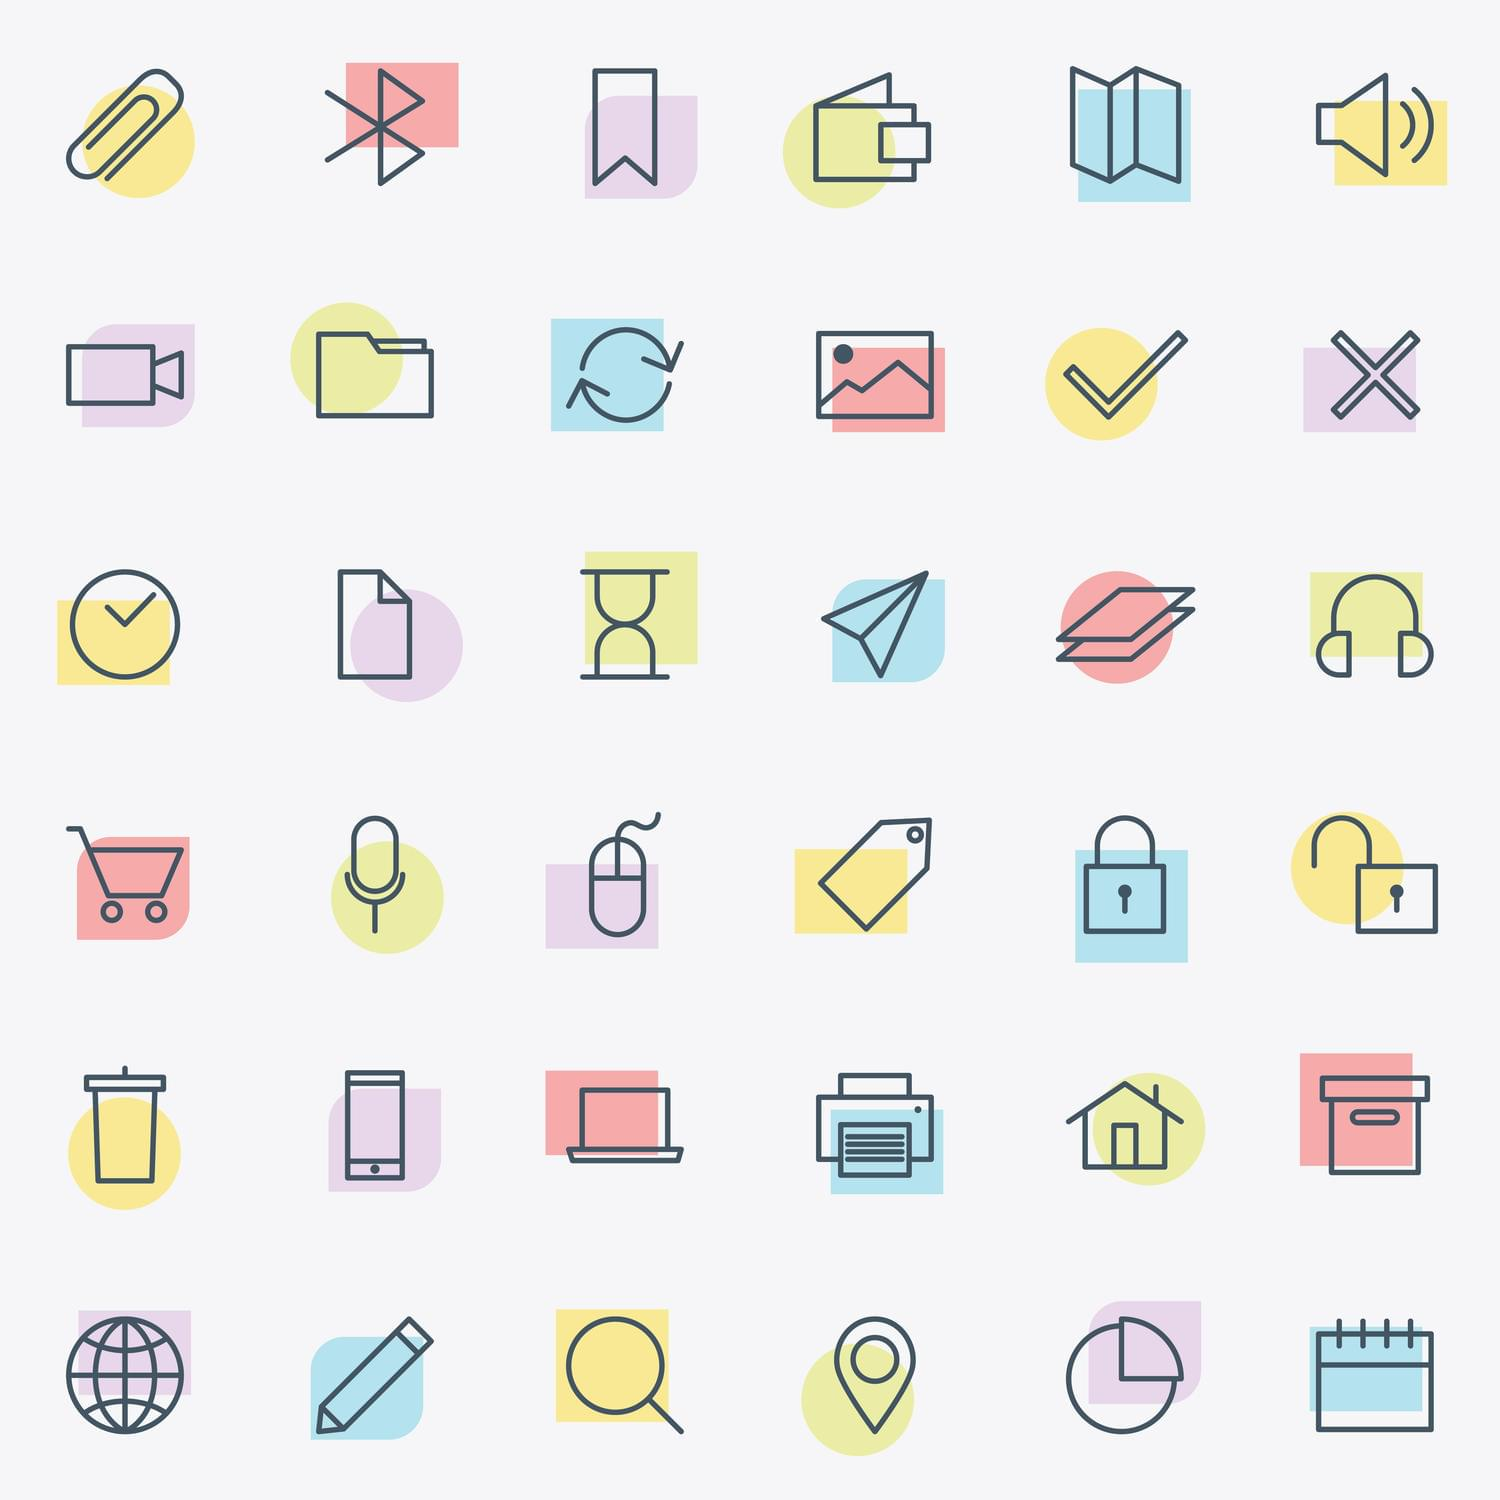 Custom Design Icon Set by snja - 115034